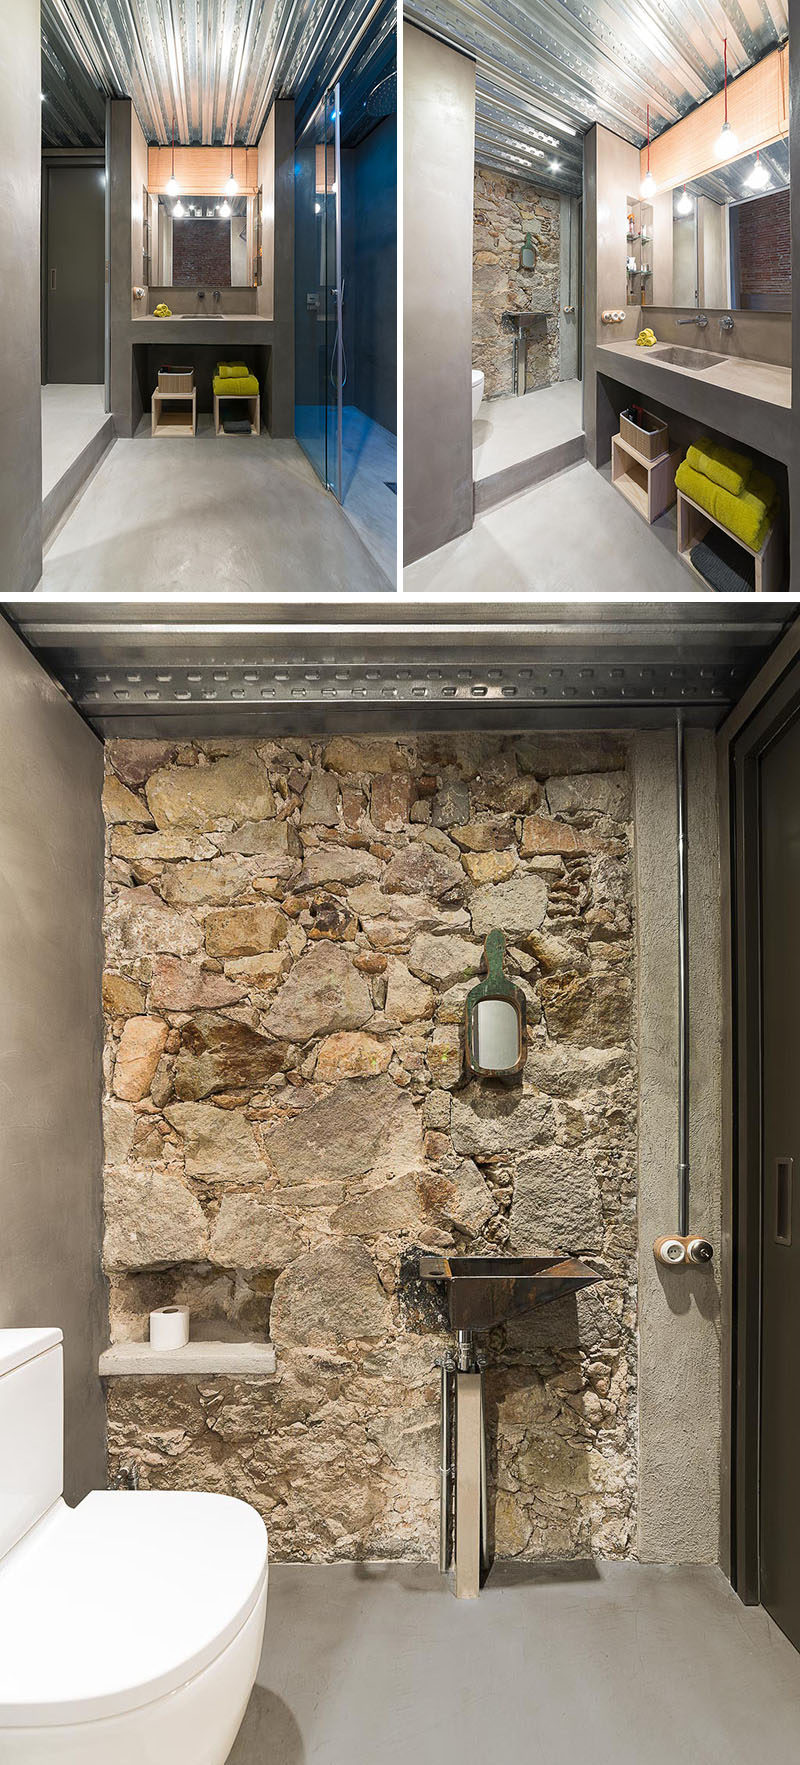 In this renovated bathroom,, the vanity area and shower are stepped down from the toilet, and a metal ceiling helps to keep things bright. While the original stone wall has become a feature wall.